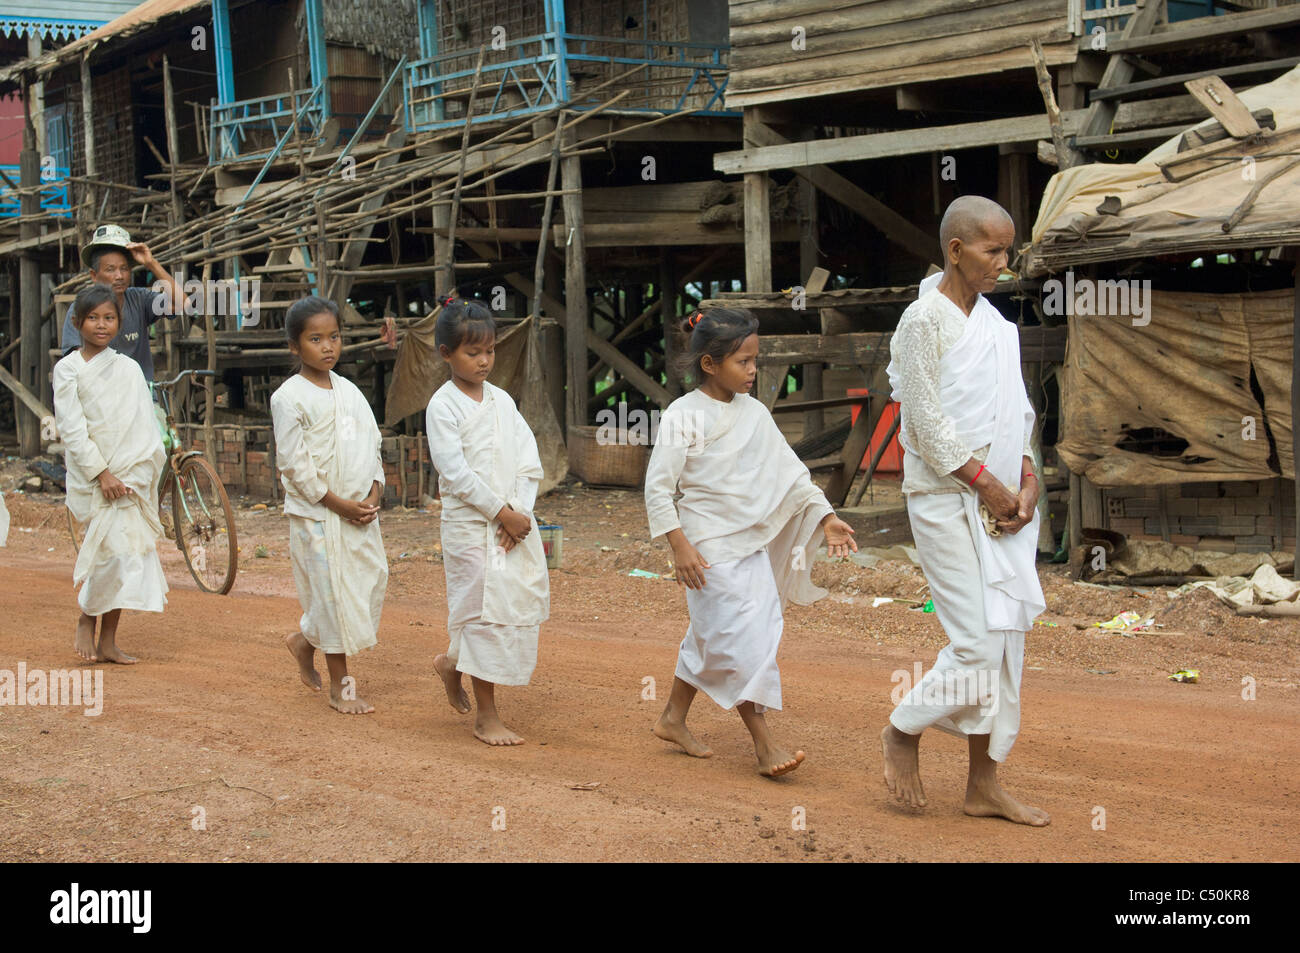 Buddhist nuns on their morning alms round, Kompong Klang, on the shore of Tonle Sap lake, near Siem Reap, Cambodia Stock Photo